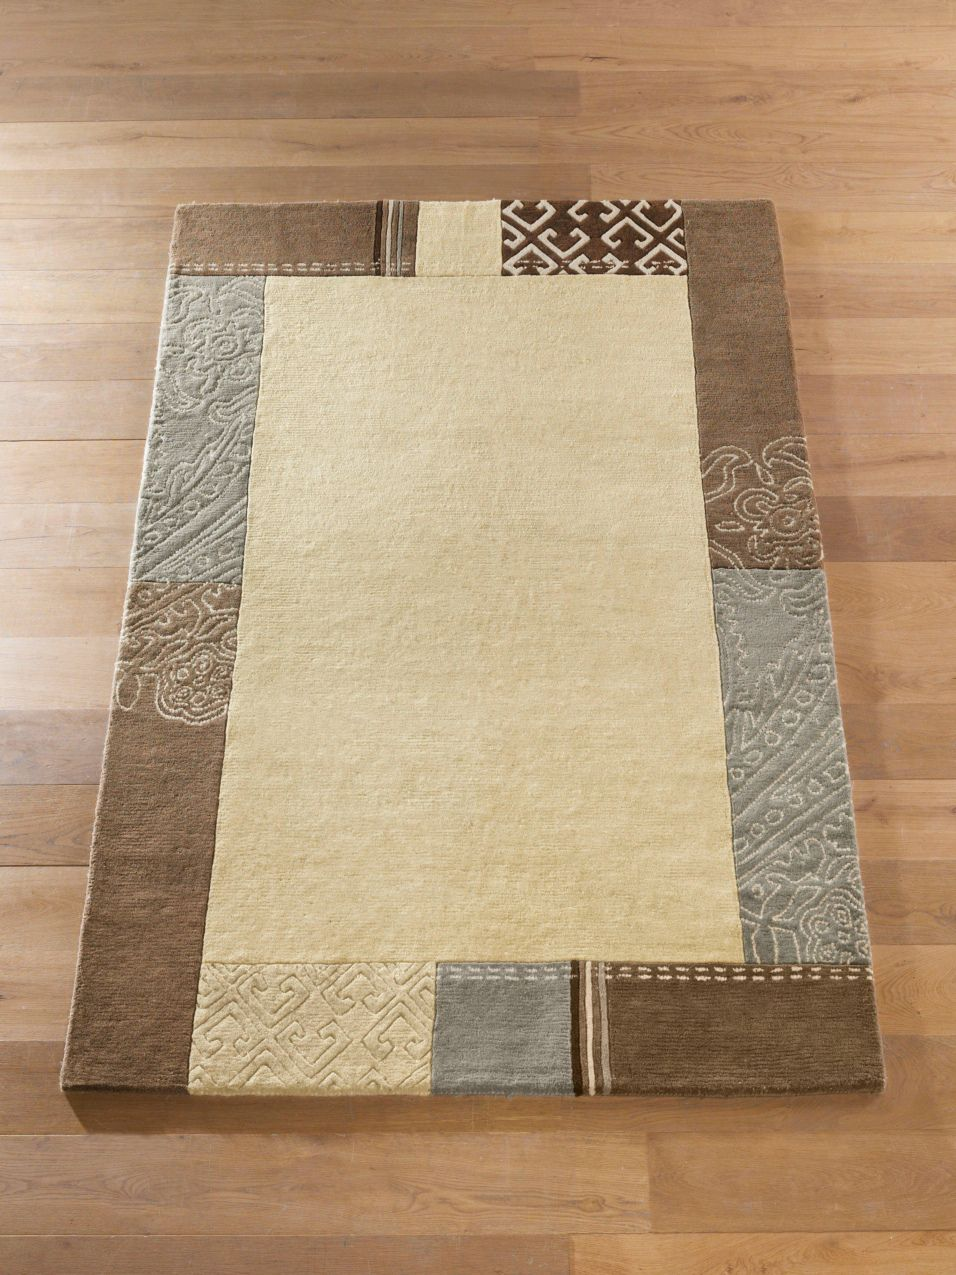 70 Buche Compressee Brico Depot 2019 Contemporary Rug Contemporary Decor